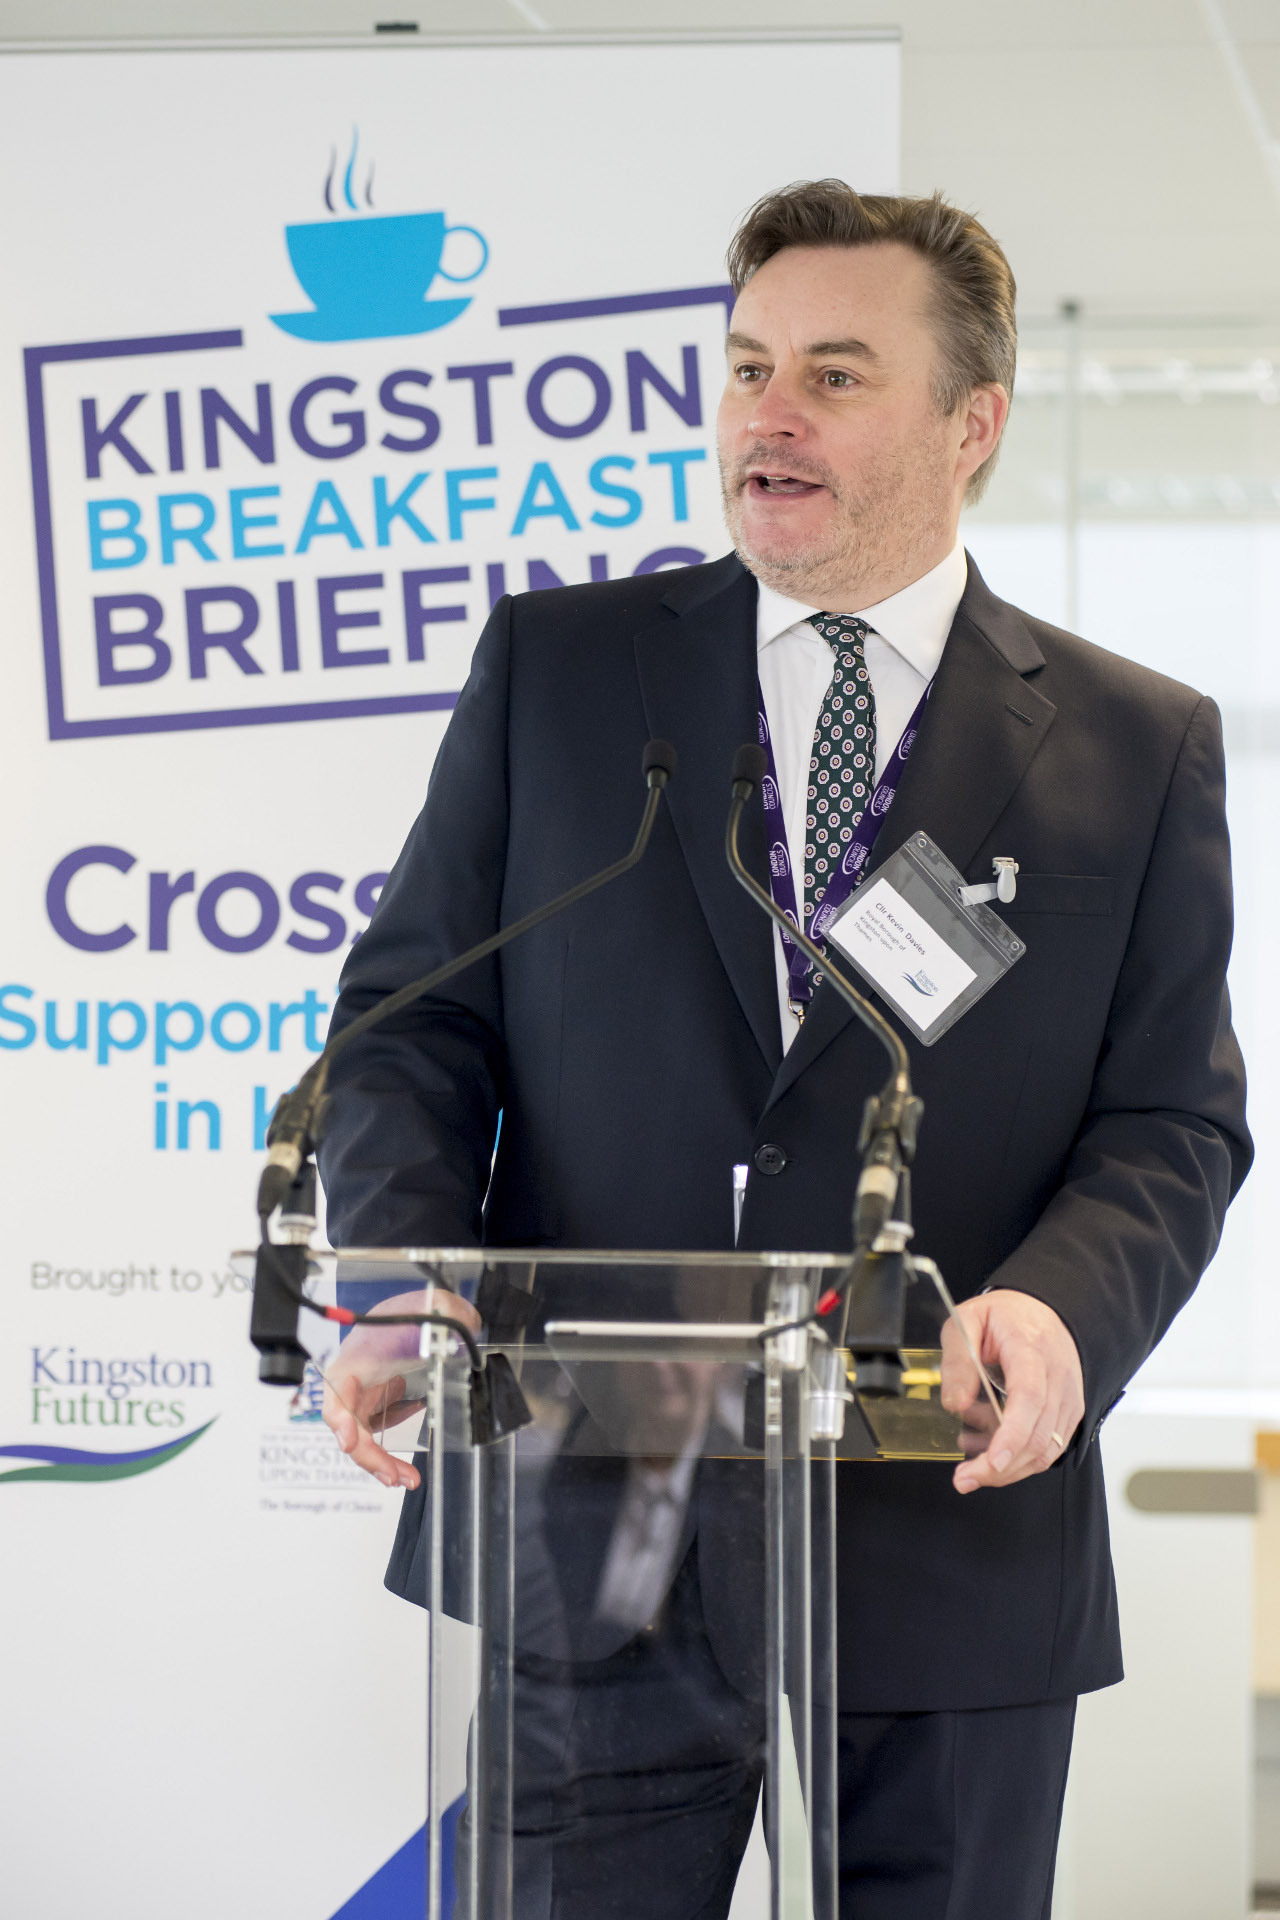 Cllr_Davis__Leader_of_Kingston_Council__speaking_at_the_Kingston_Futures_Business_Breakfast_1920